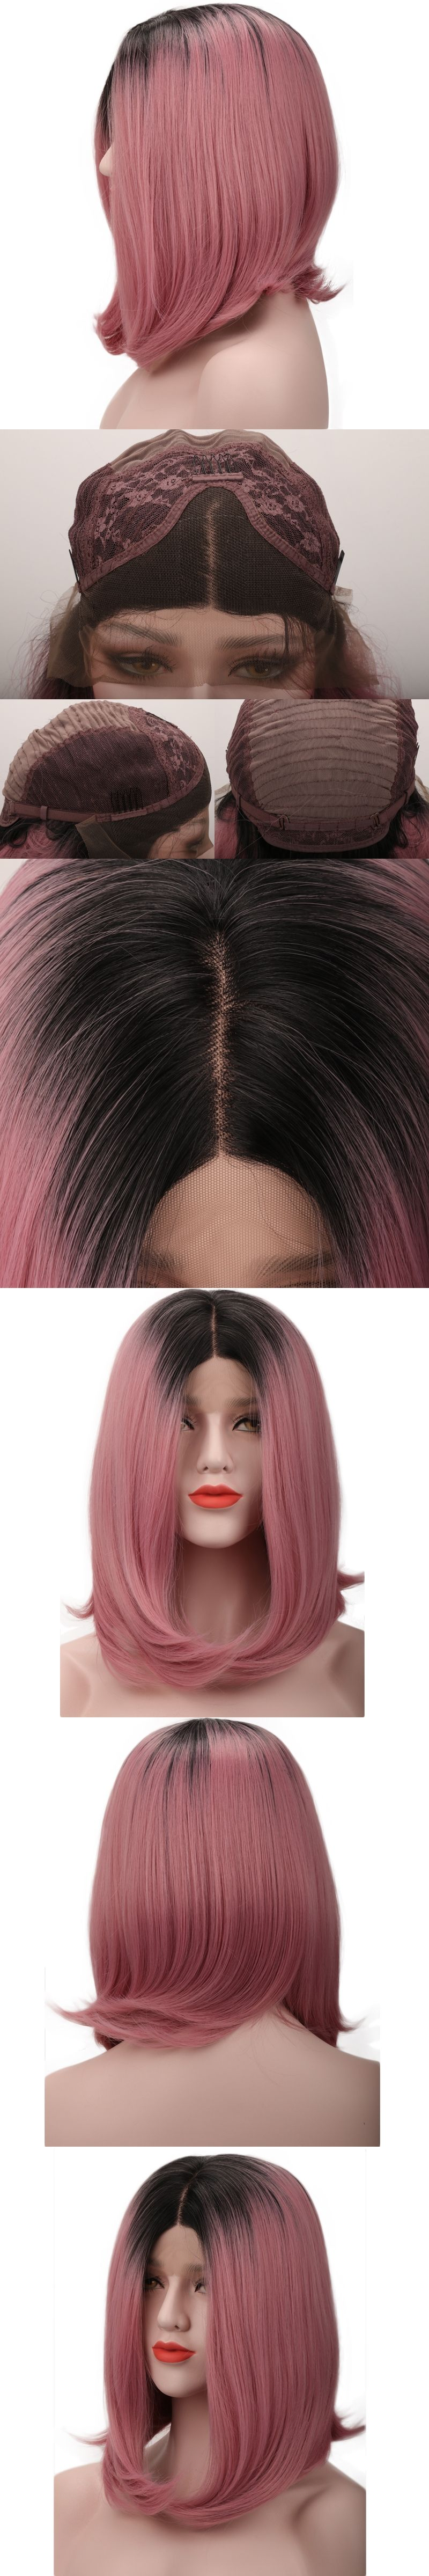 Symbol Of The Brand Alileader Two Tones Ombre Wig 14 Short Silky Straight Synthetic Hair Wig For Women Kanekalon Bob Style Afircan American Hair Hair Extensions & Wigs